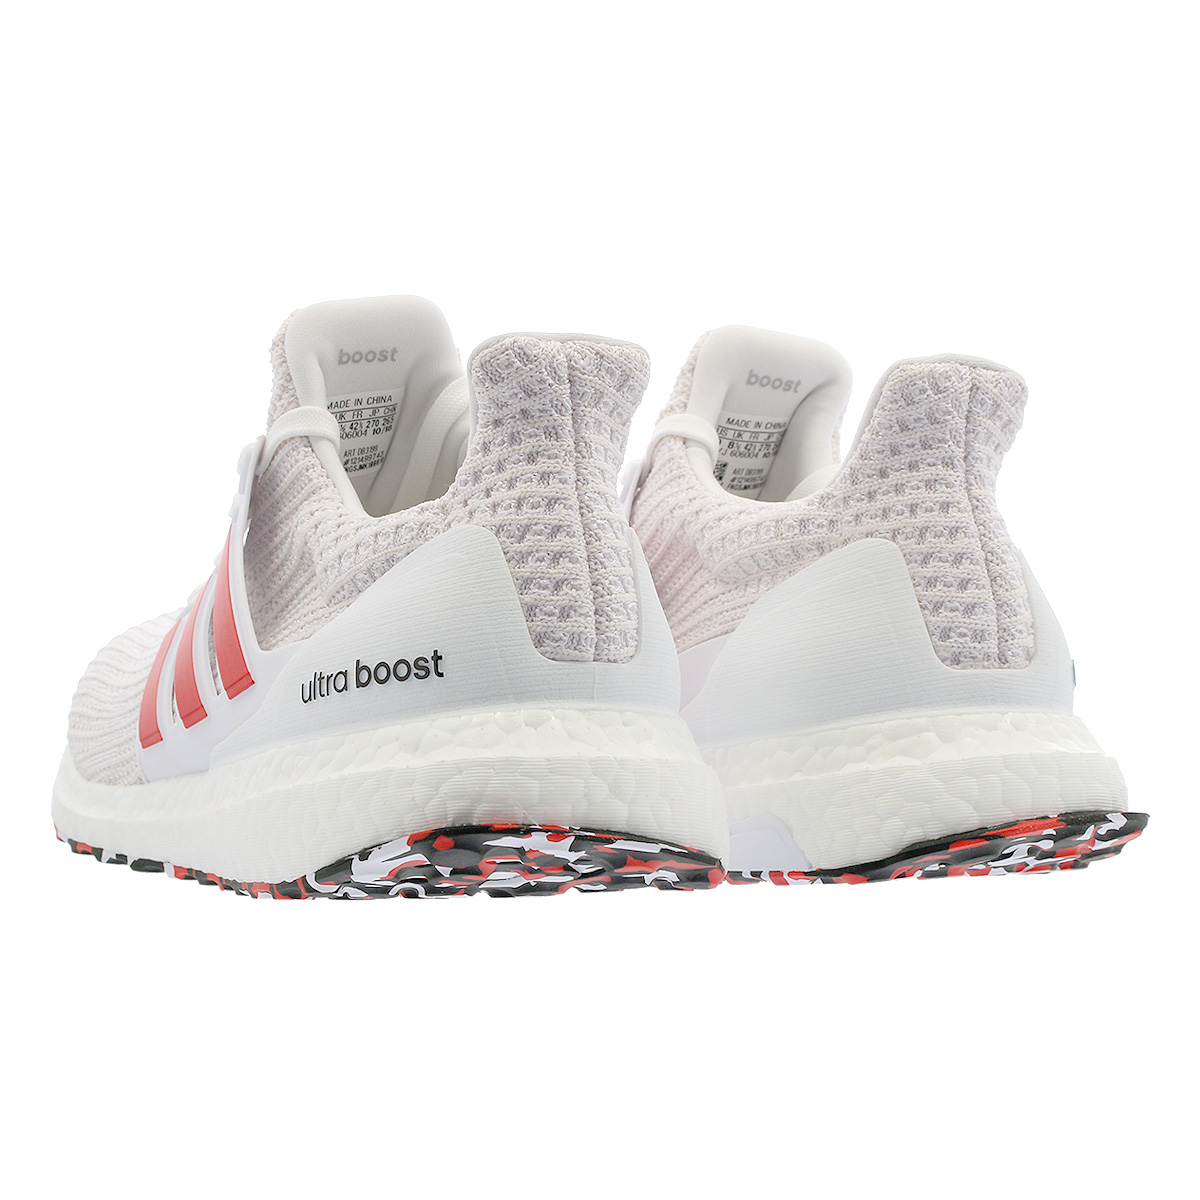 908ba9be0e2 adidas ULTRA BOOST Adidas ultra boost RUNNING WHITE ACTIVE RED CHALK WHITE  db3199